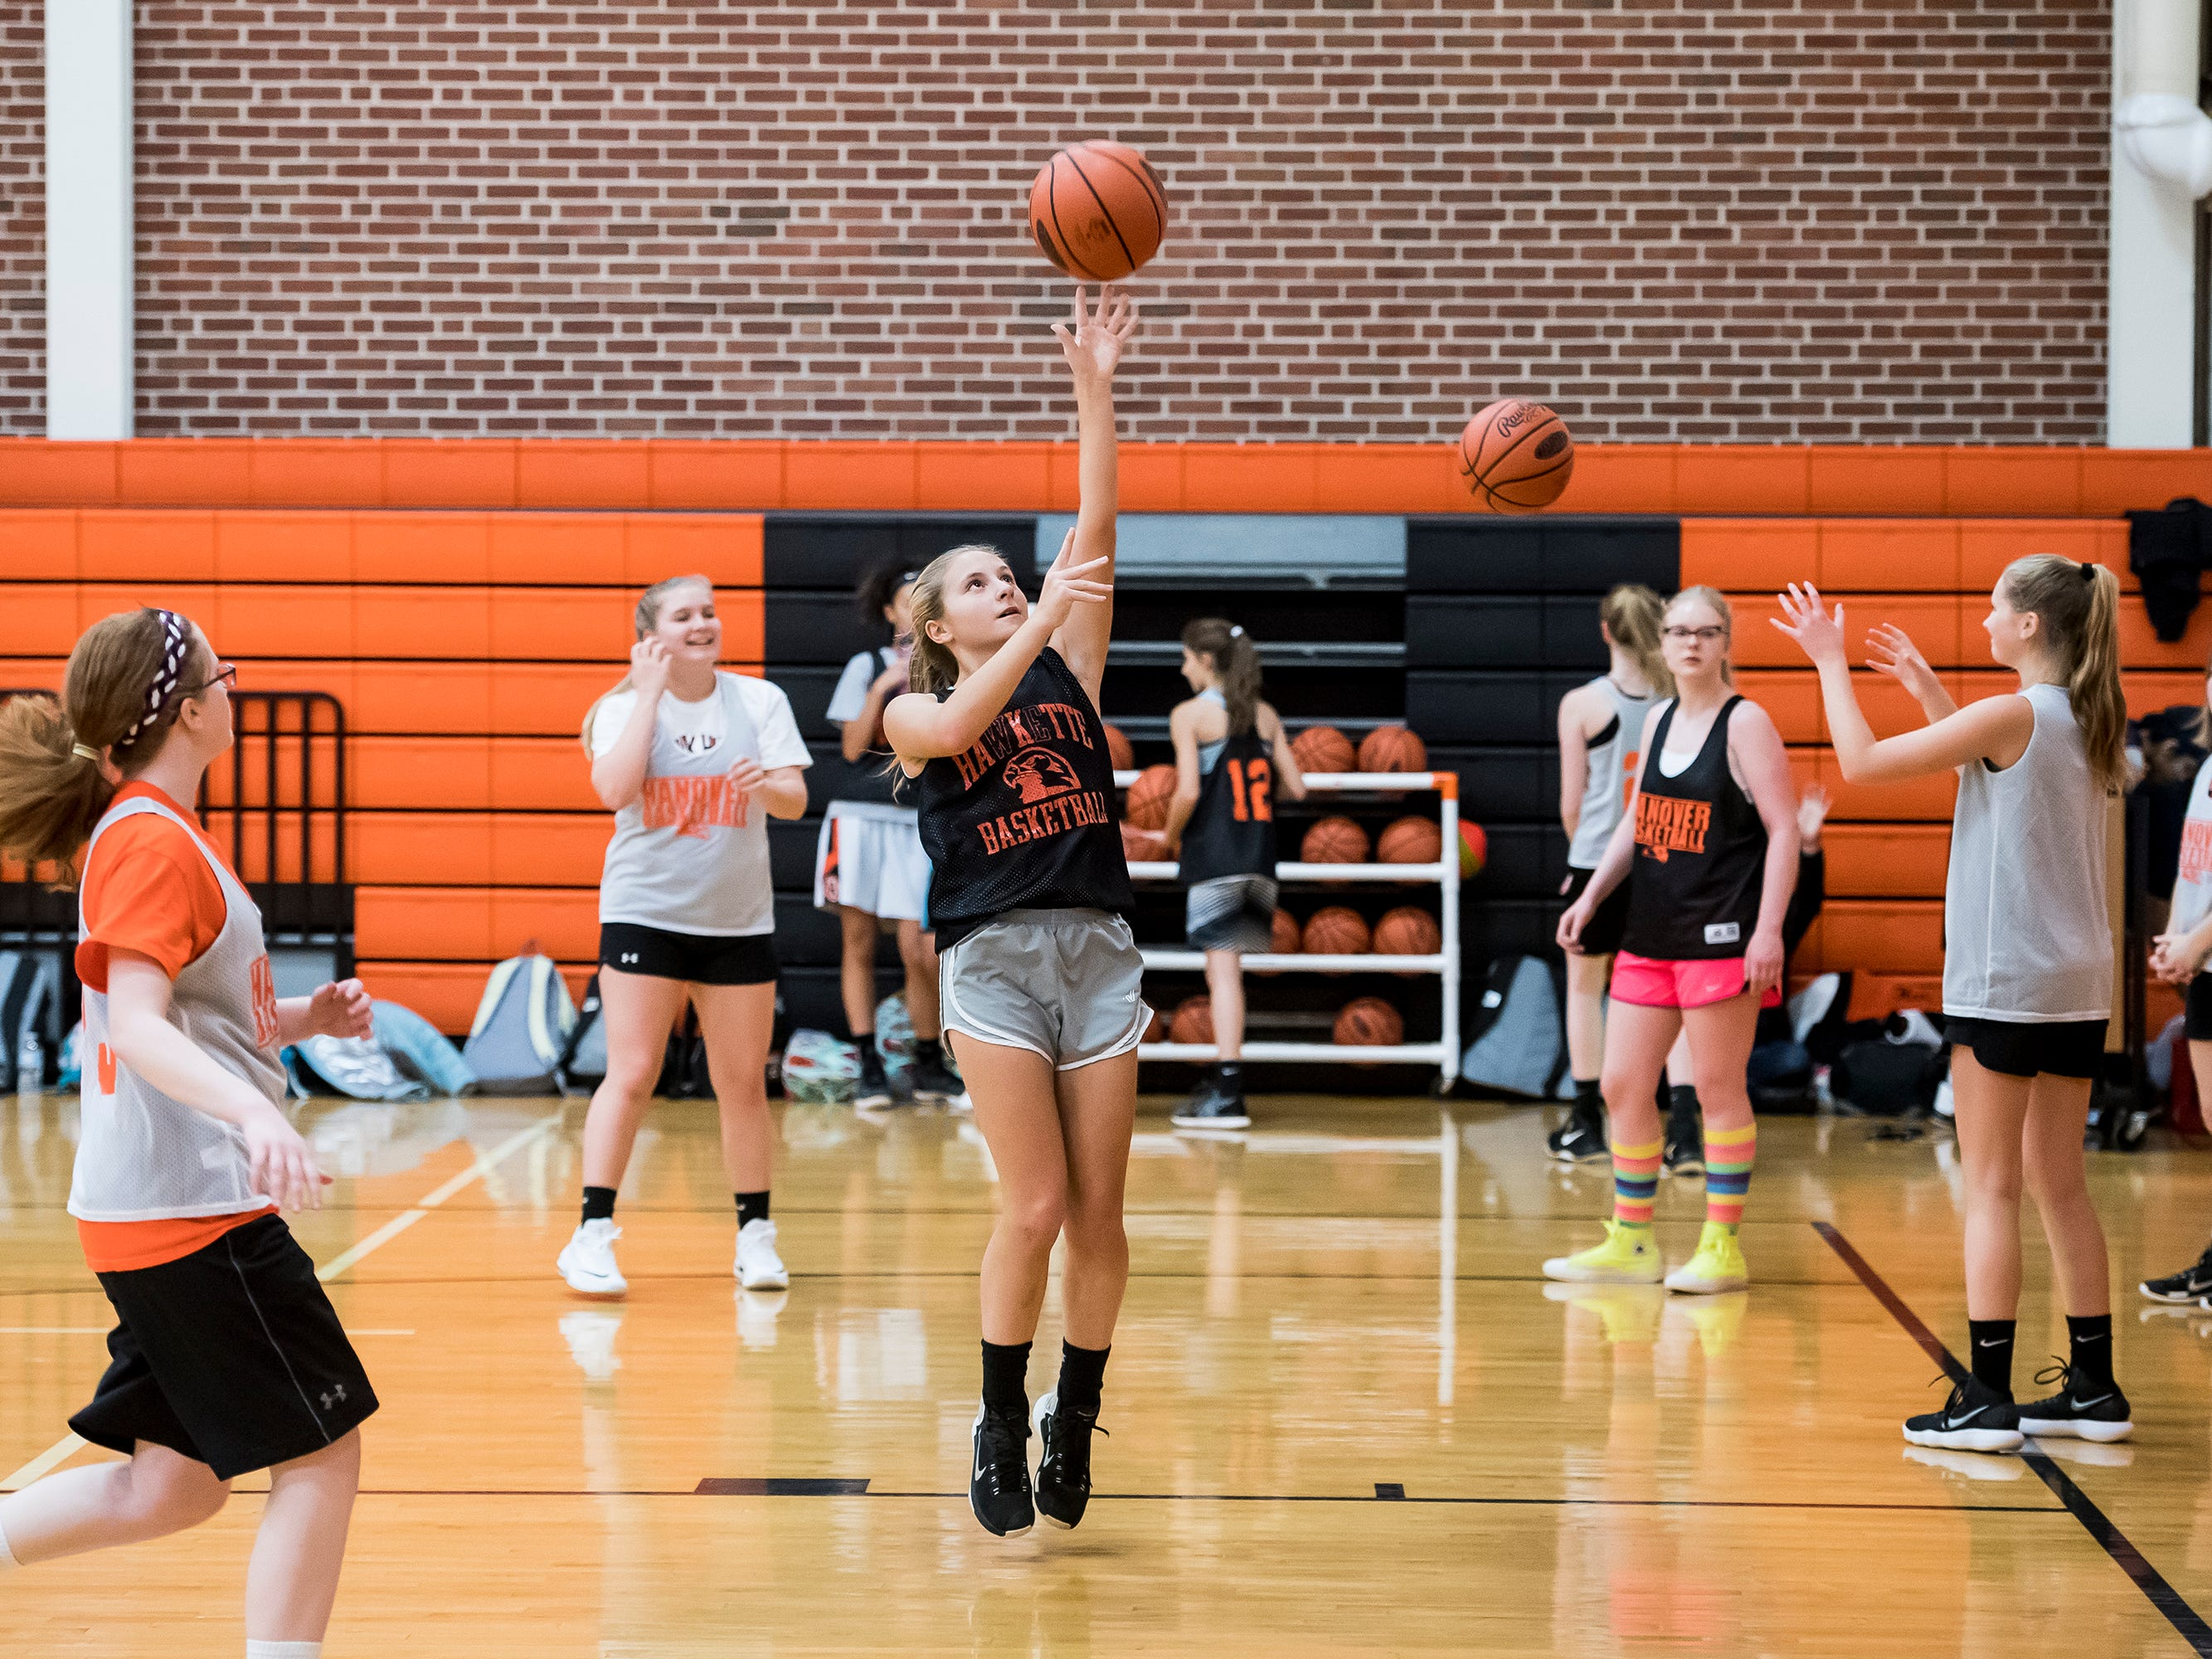 Hanover basketball player Sydney Delong, center, shoots the ball during the first official day of winter sports practice on Friday, November 16, 2018.